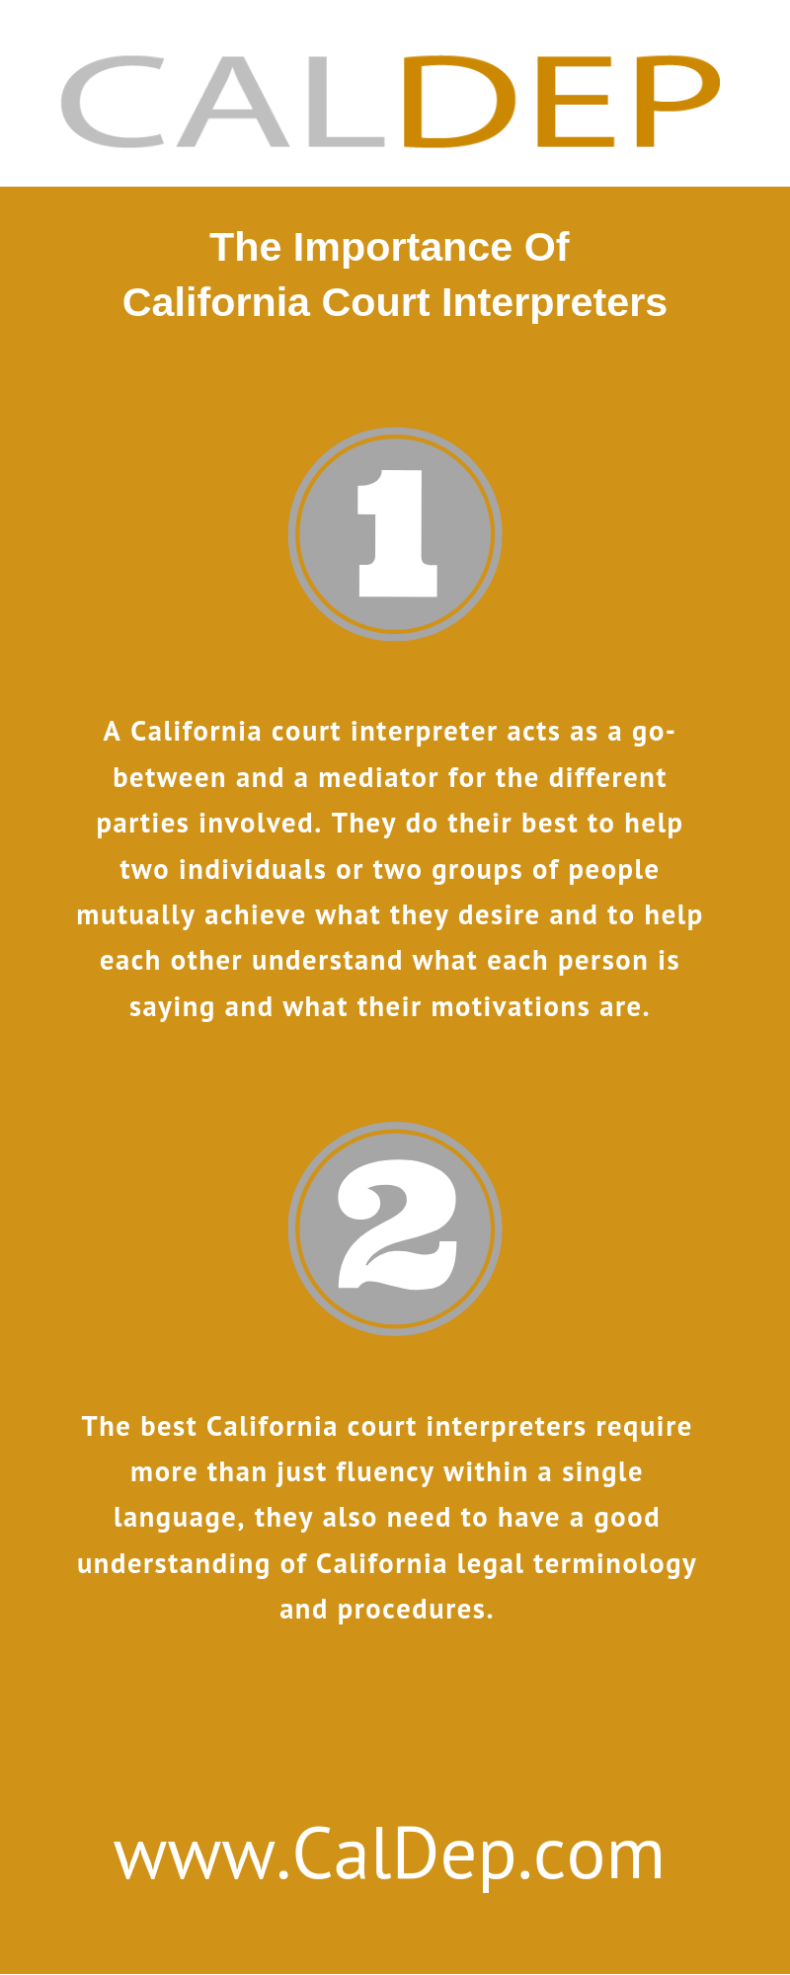 The Importance Of California Court Interpreters